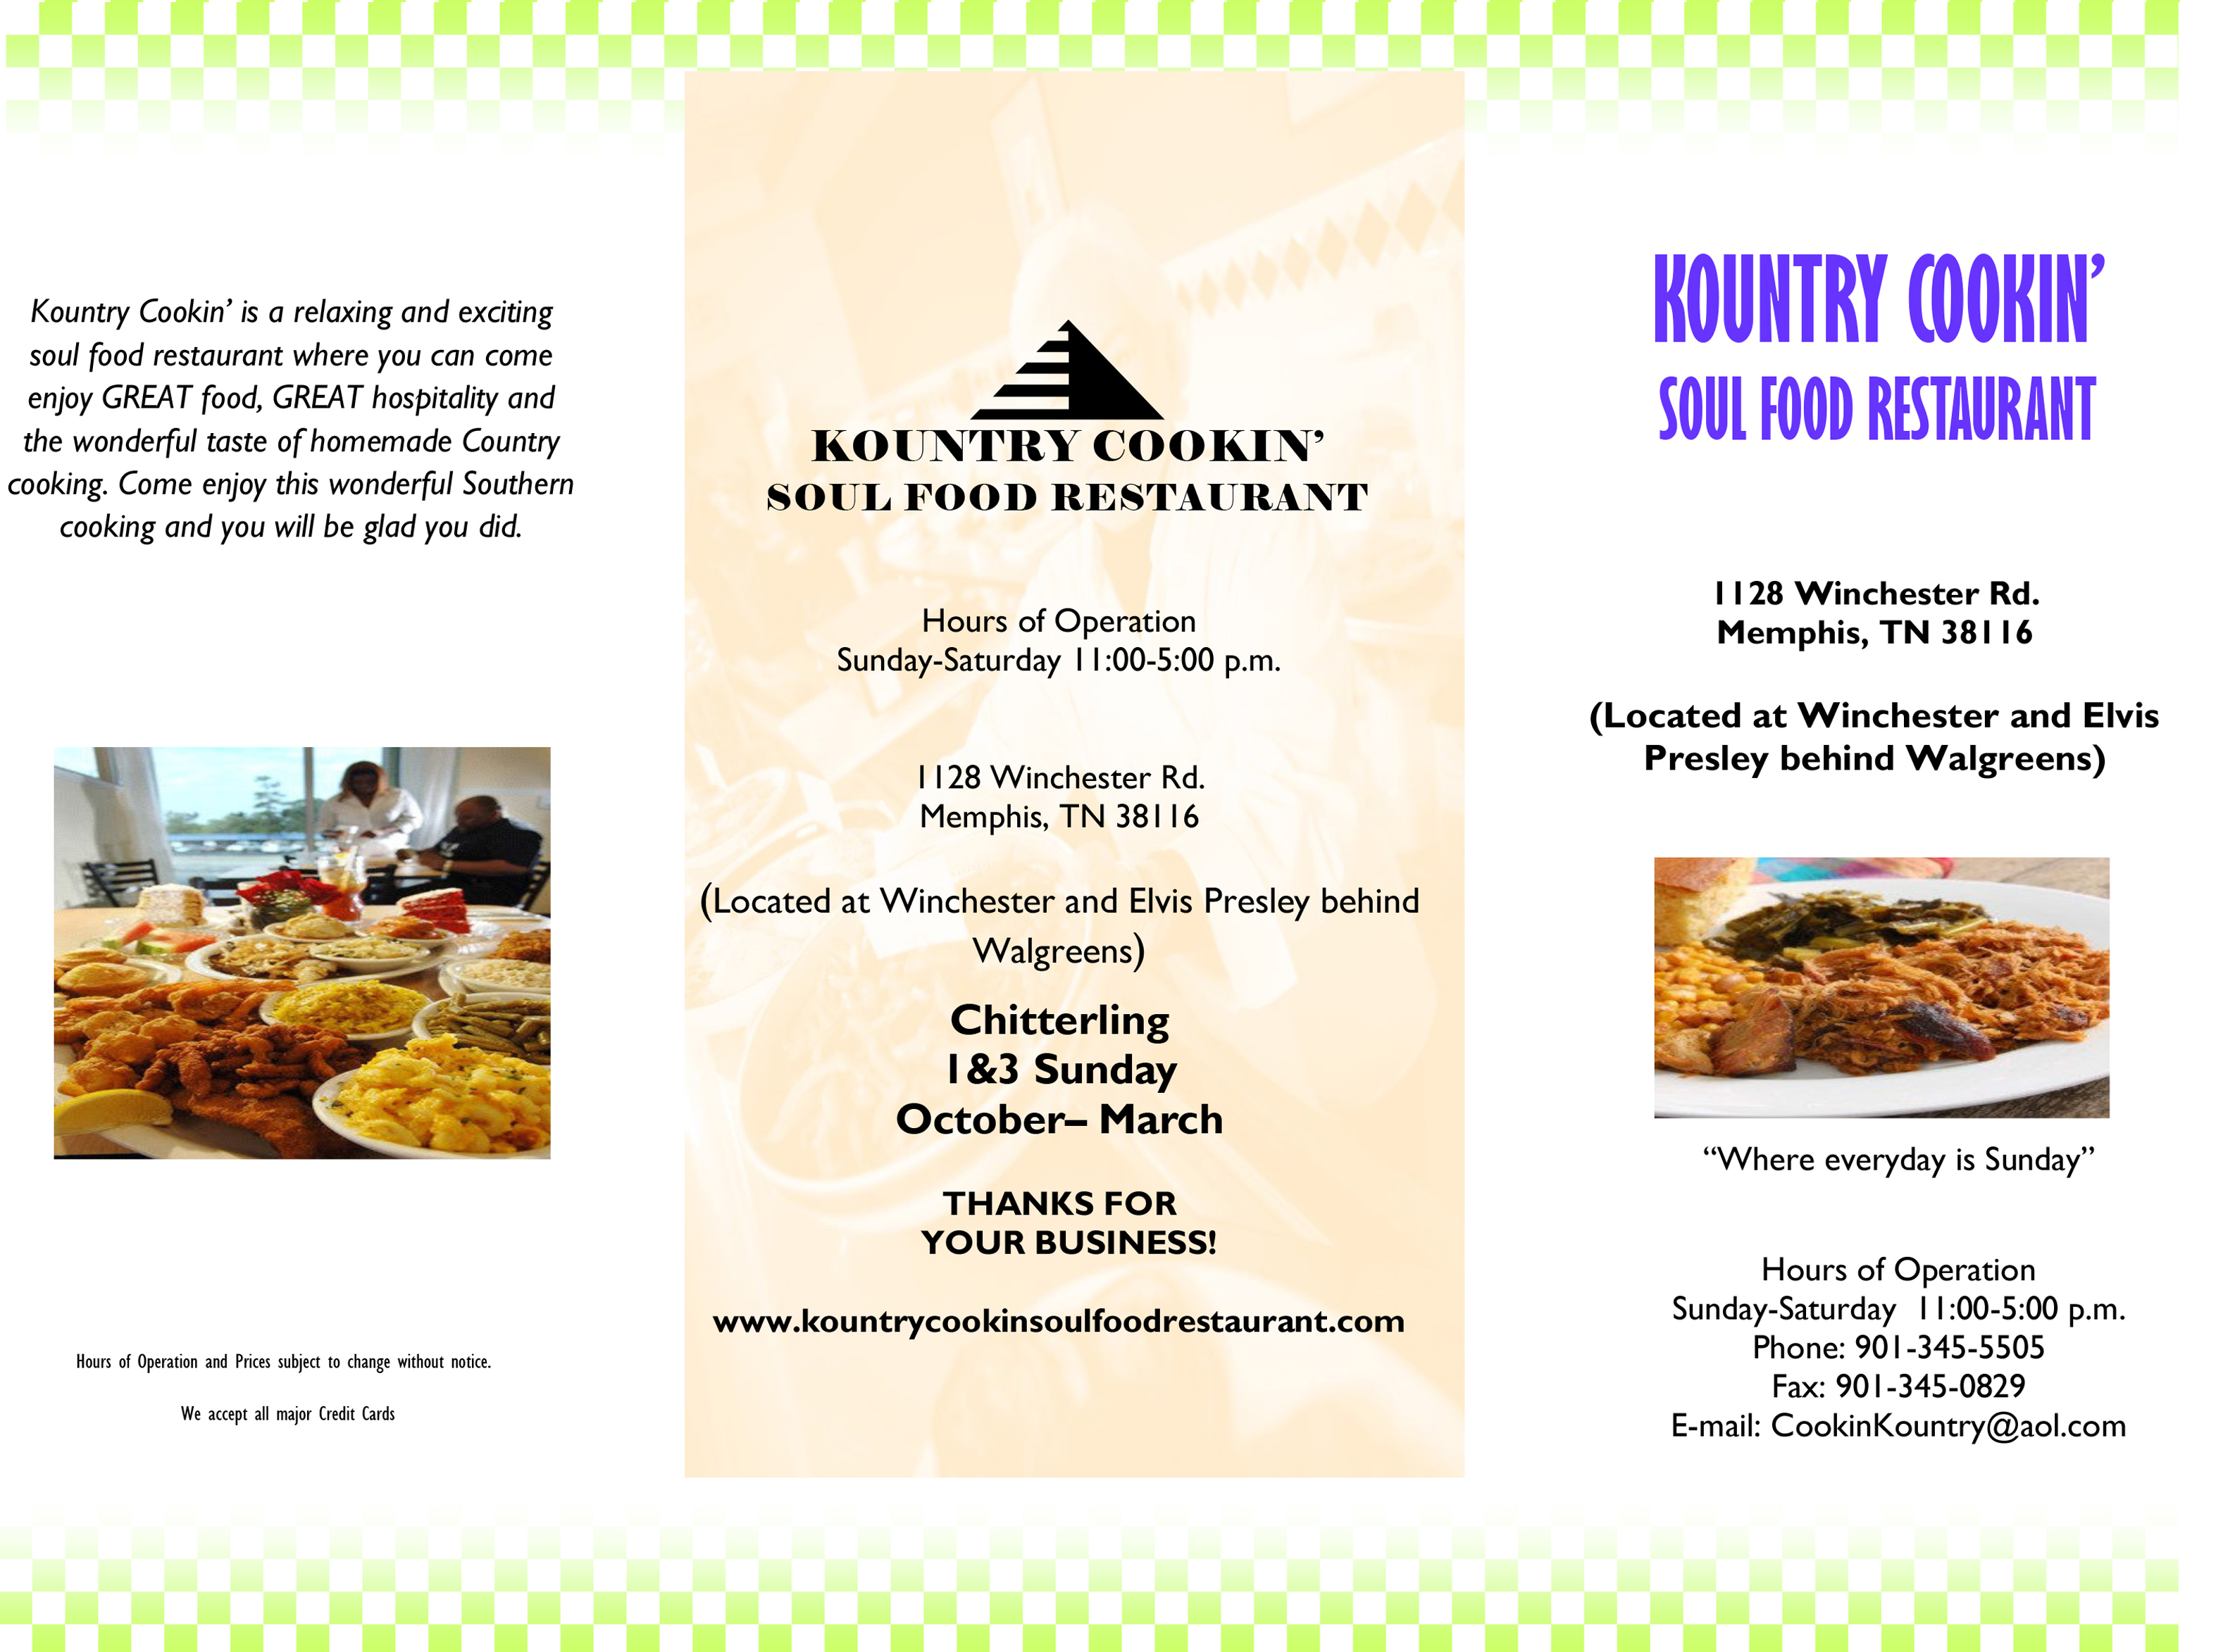 Swell Welcome To Kountry Cookin Soul Food Restaurant Menu Download Free Architecture Designs Scobabritishbridgeorg